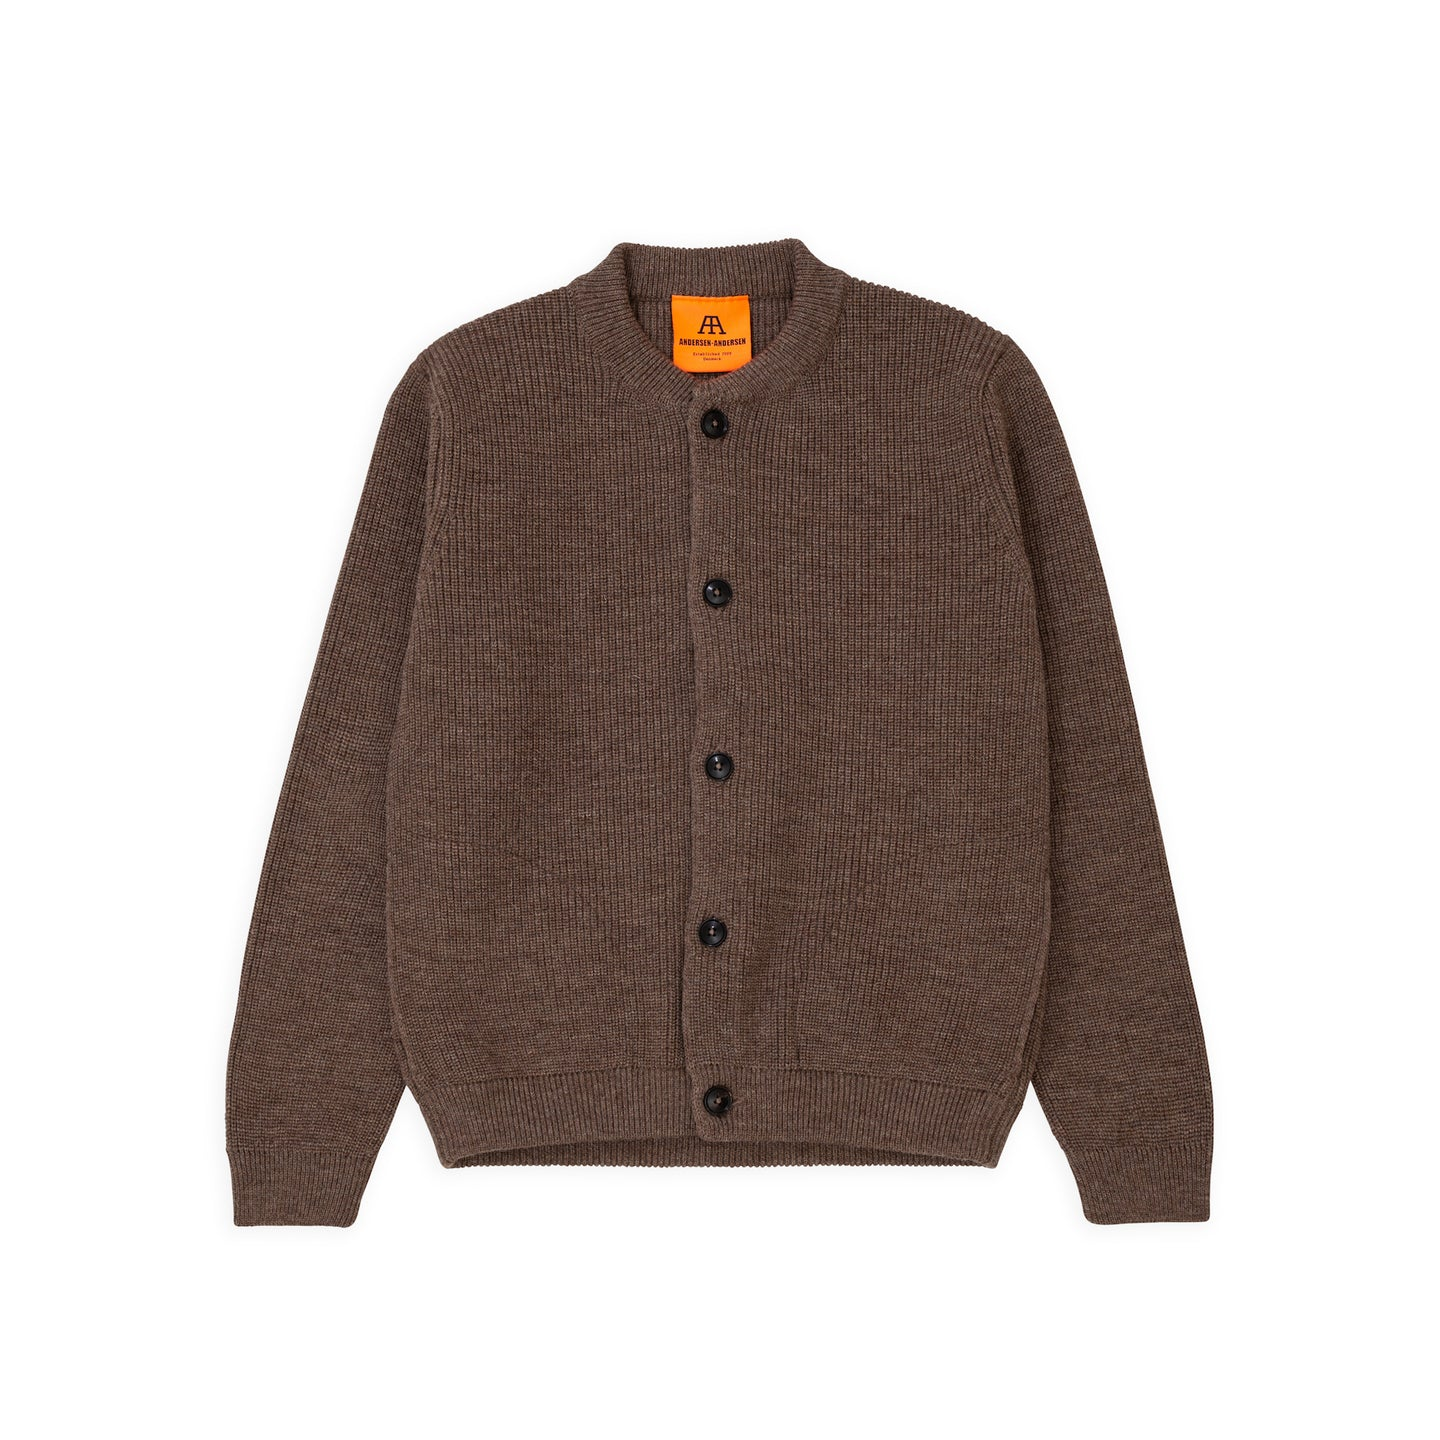 ANDERSEN-ANDERSEN Skipper Jacket - Natural Taupe